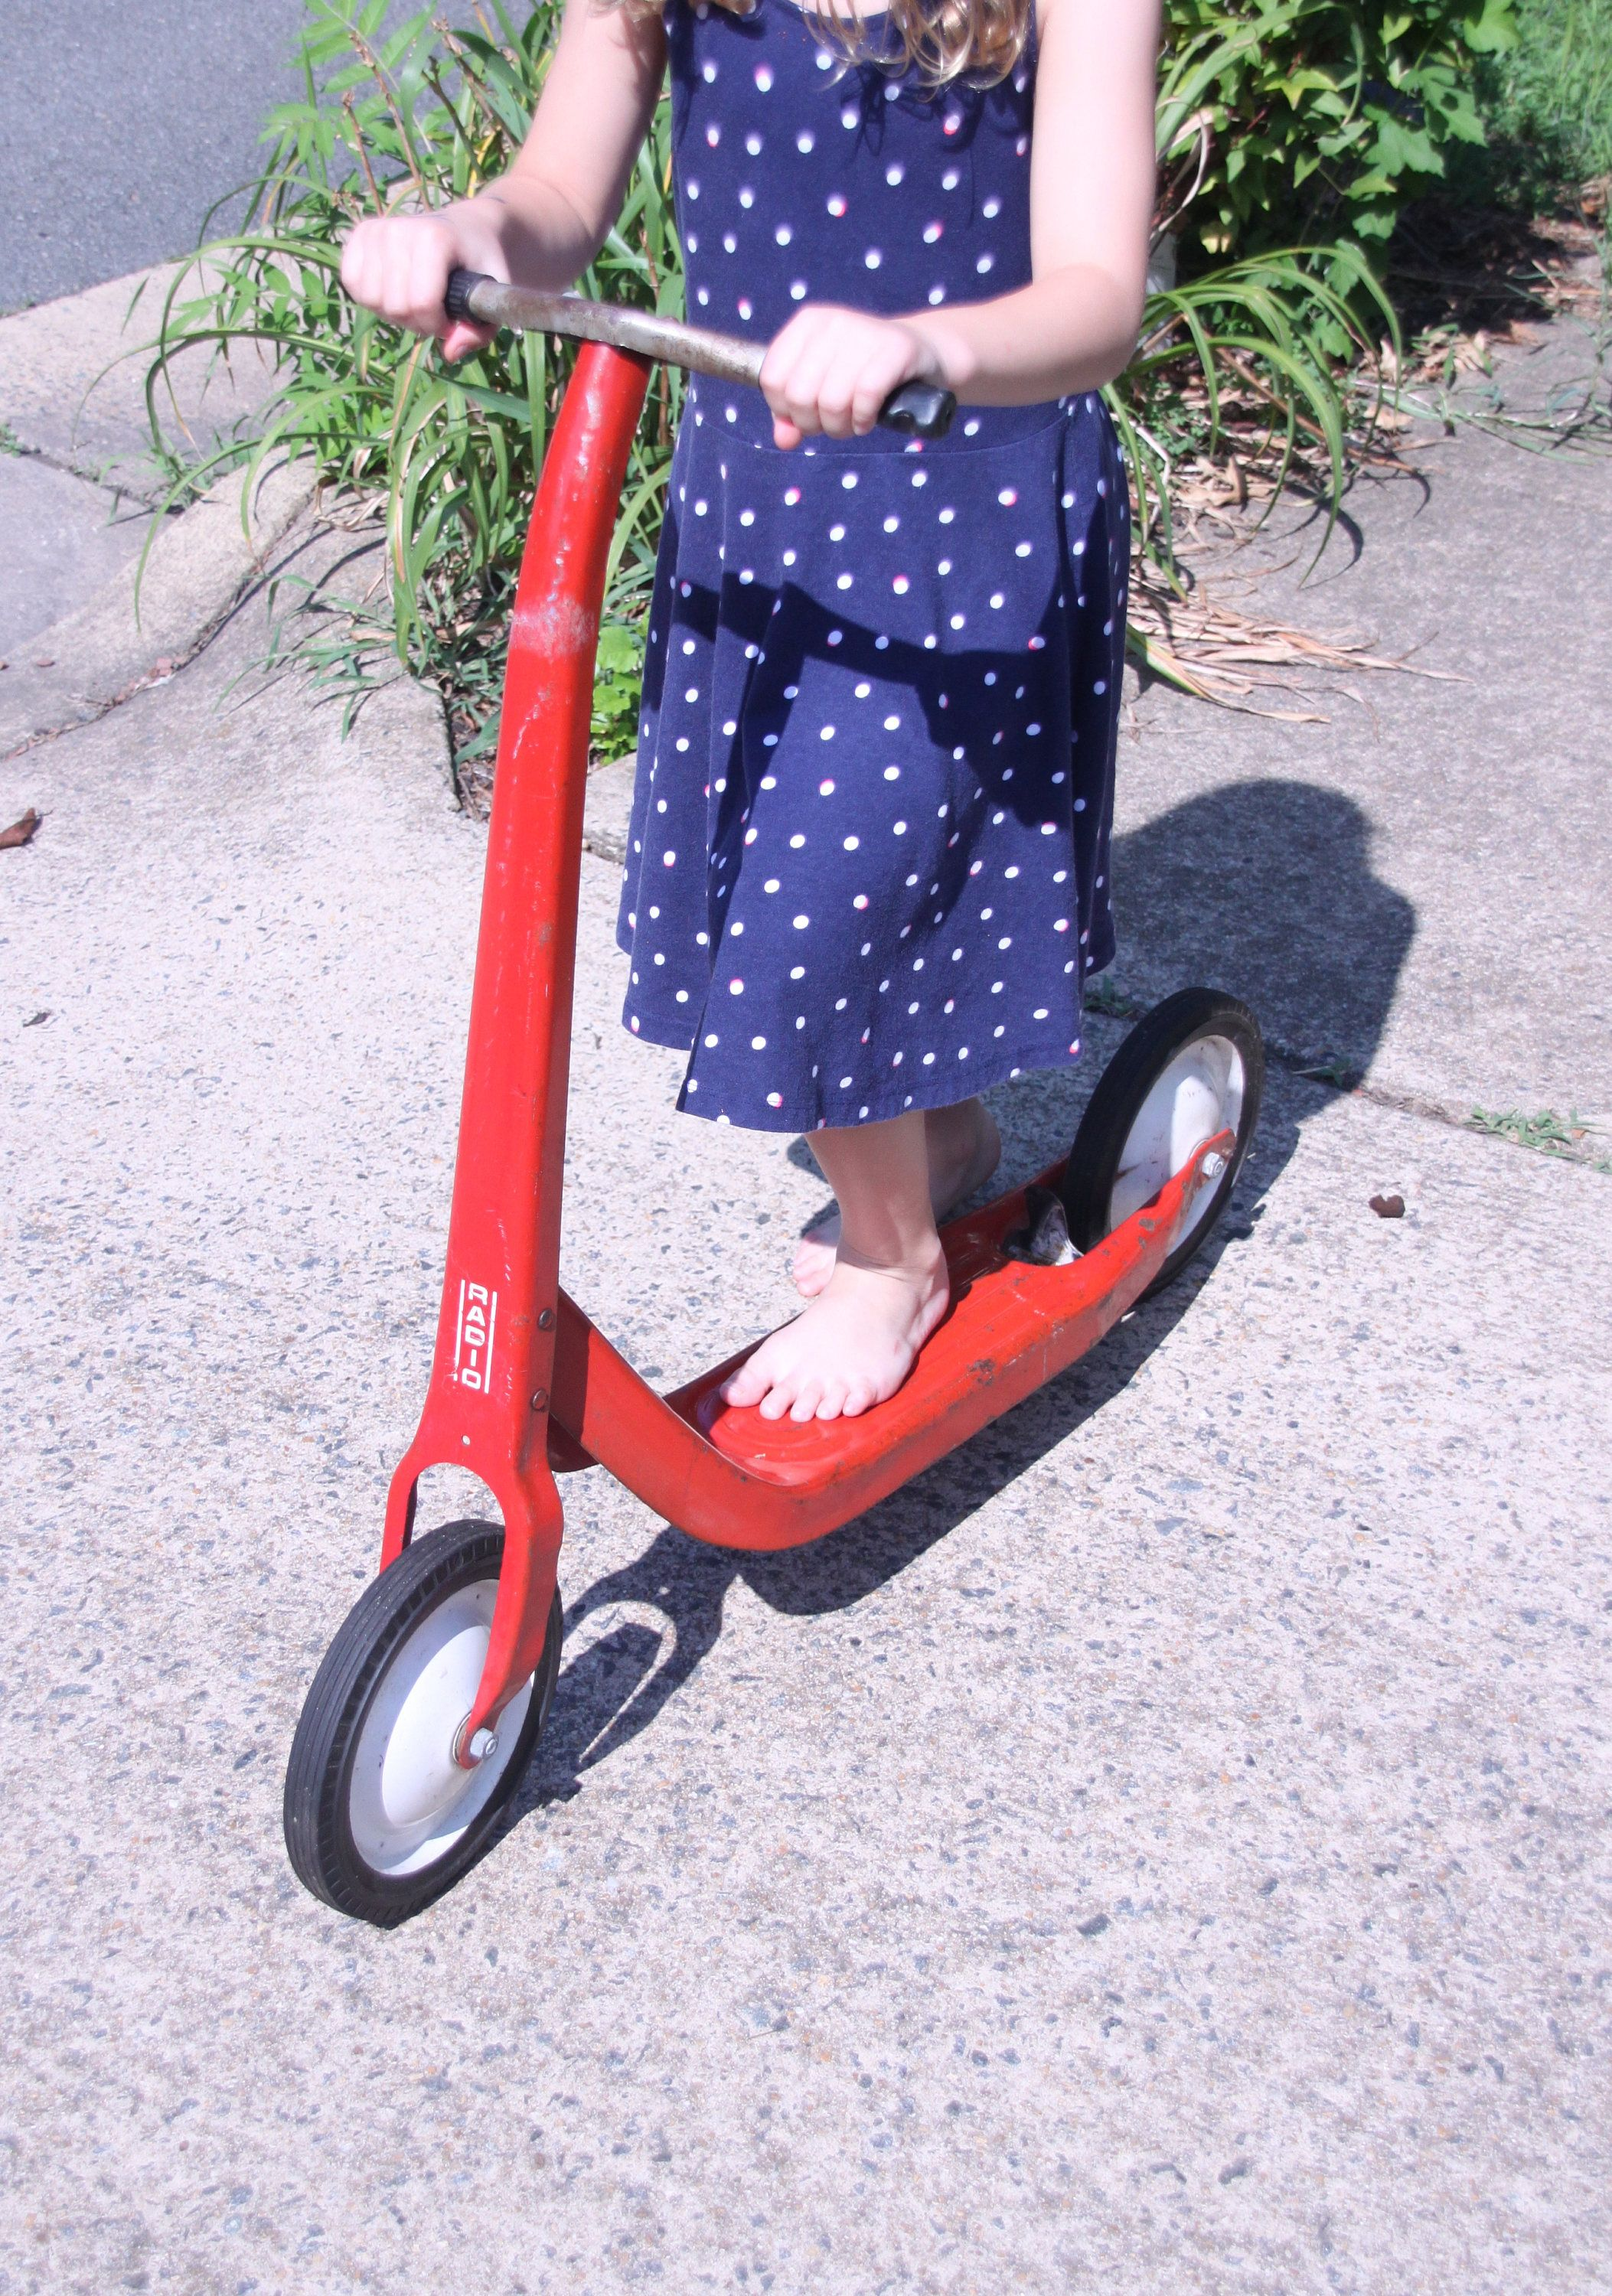 Radio Flyer Scooter Ride On Toy Red And White Metal Scooter Kids